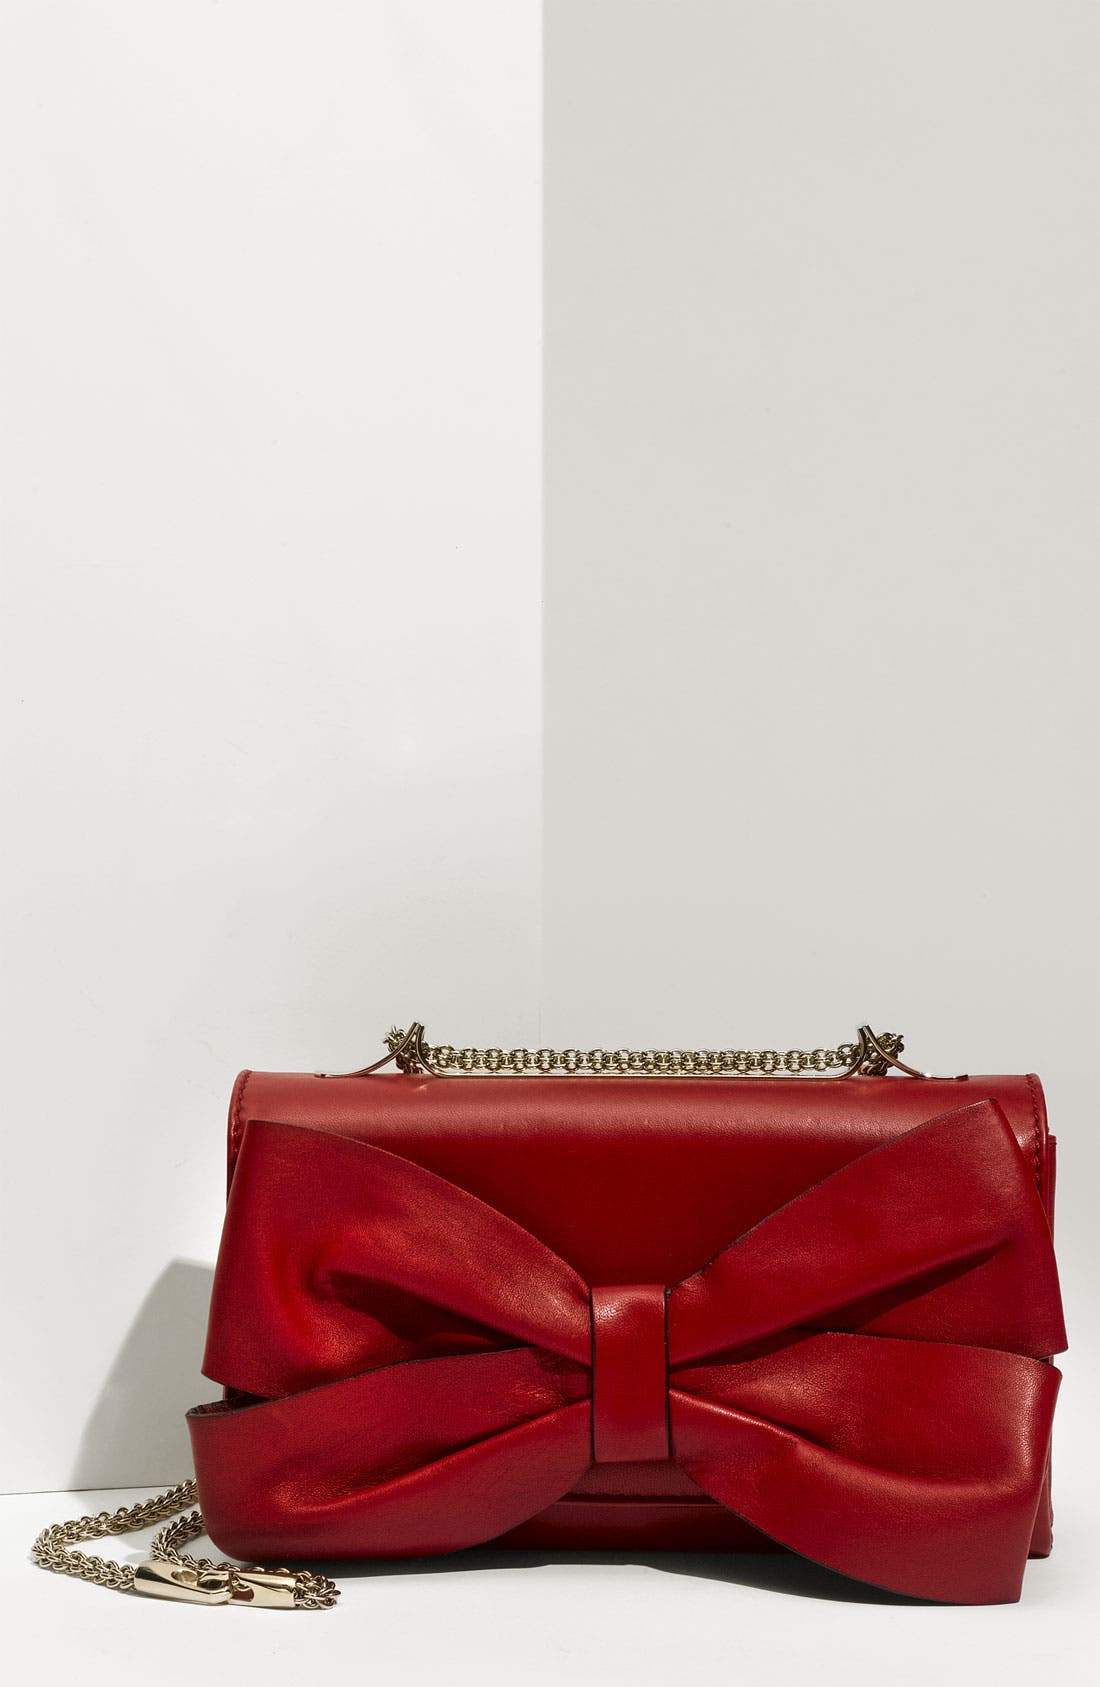 Main Image - Valentino 'Bow Flap' Leather Shoulder Bag